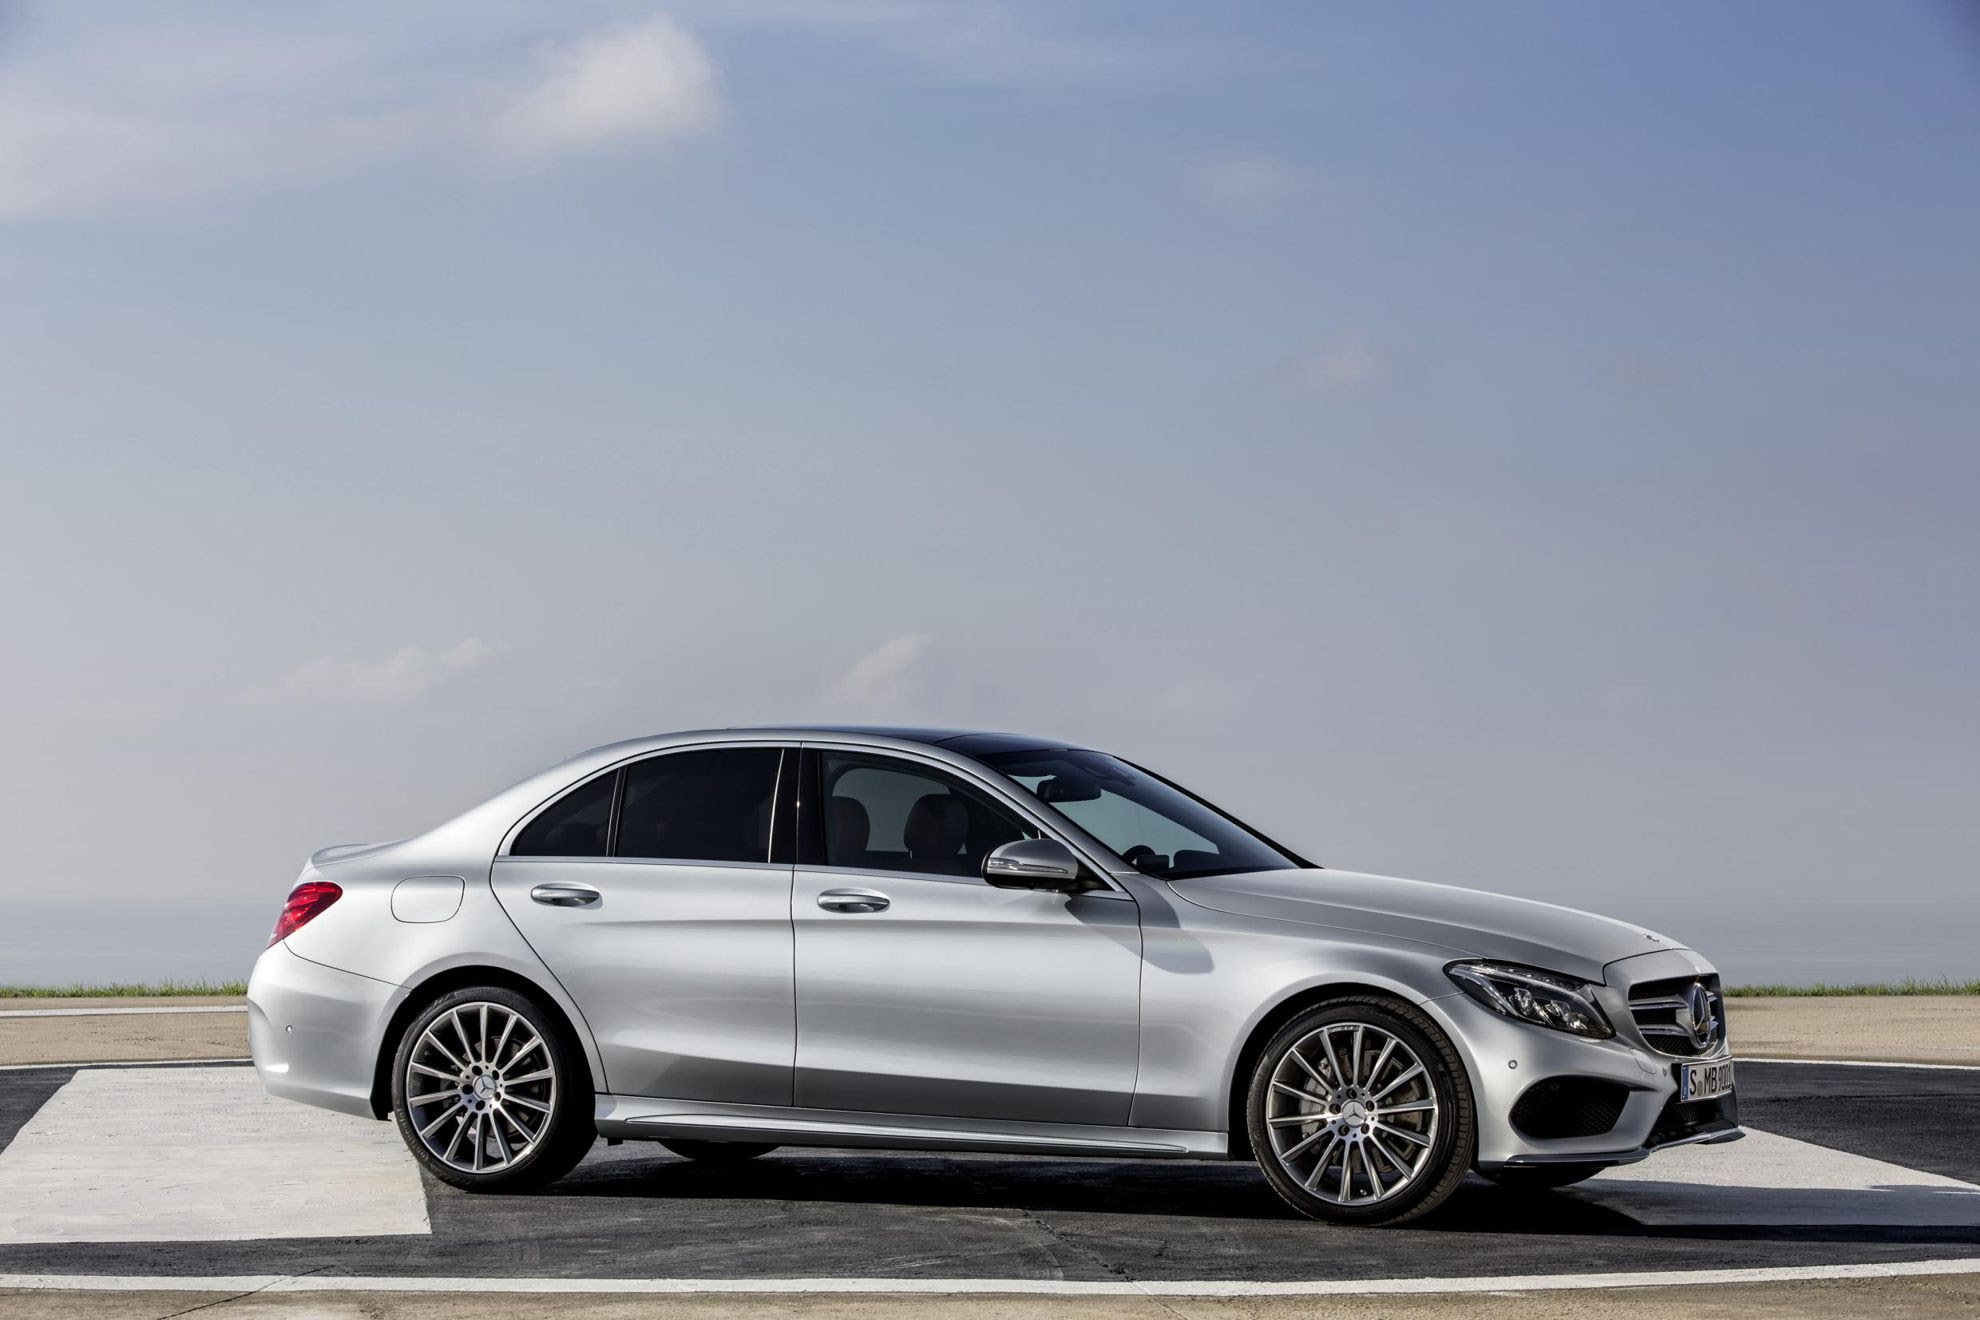 How Much Does a Mercedes-Benz C-Class Cost in the UK?